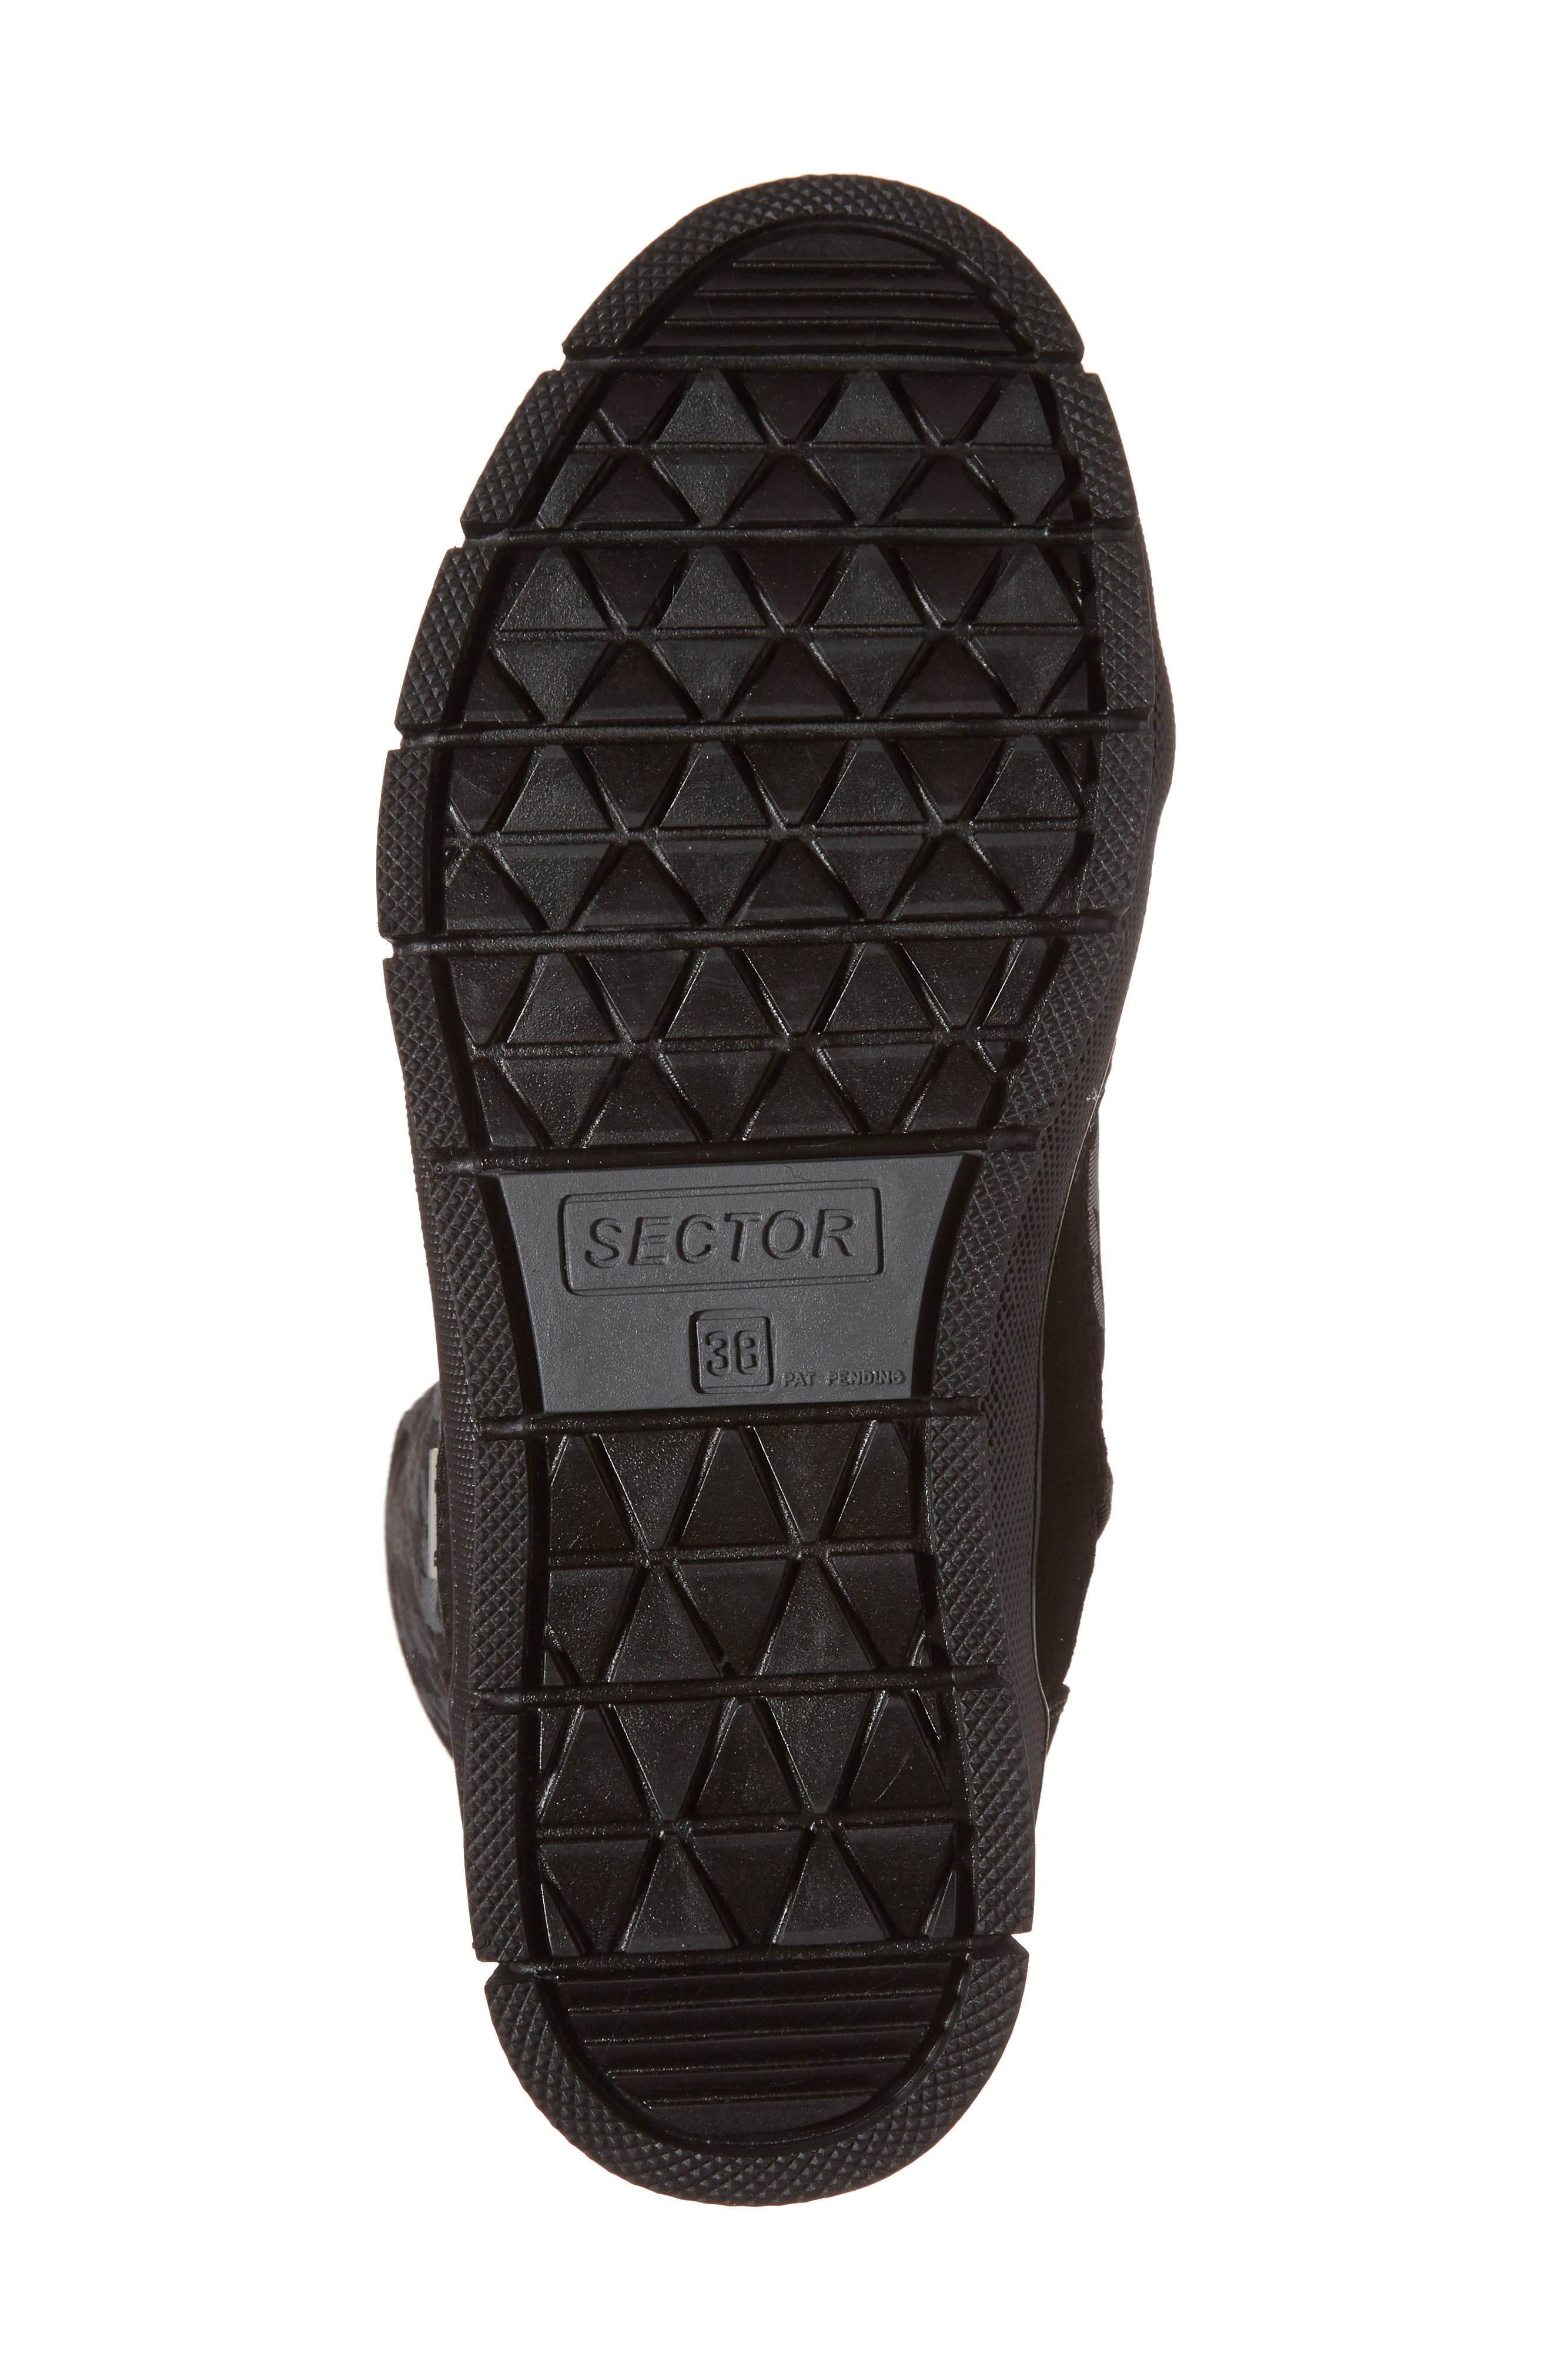 Meribel Waterproof Channel Quilted Lace Up Sneaker Boot,                             Alternate thumbnail 6, color,                             Black Pull Pied